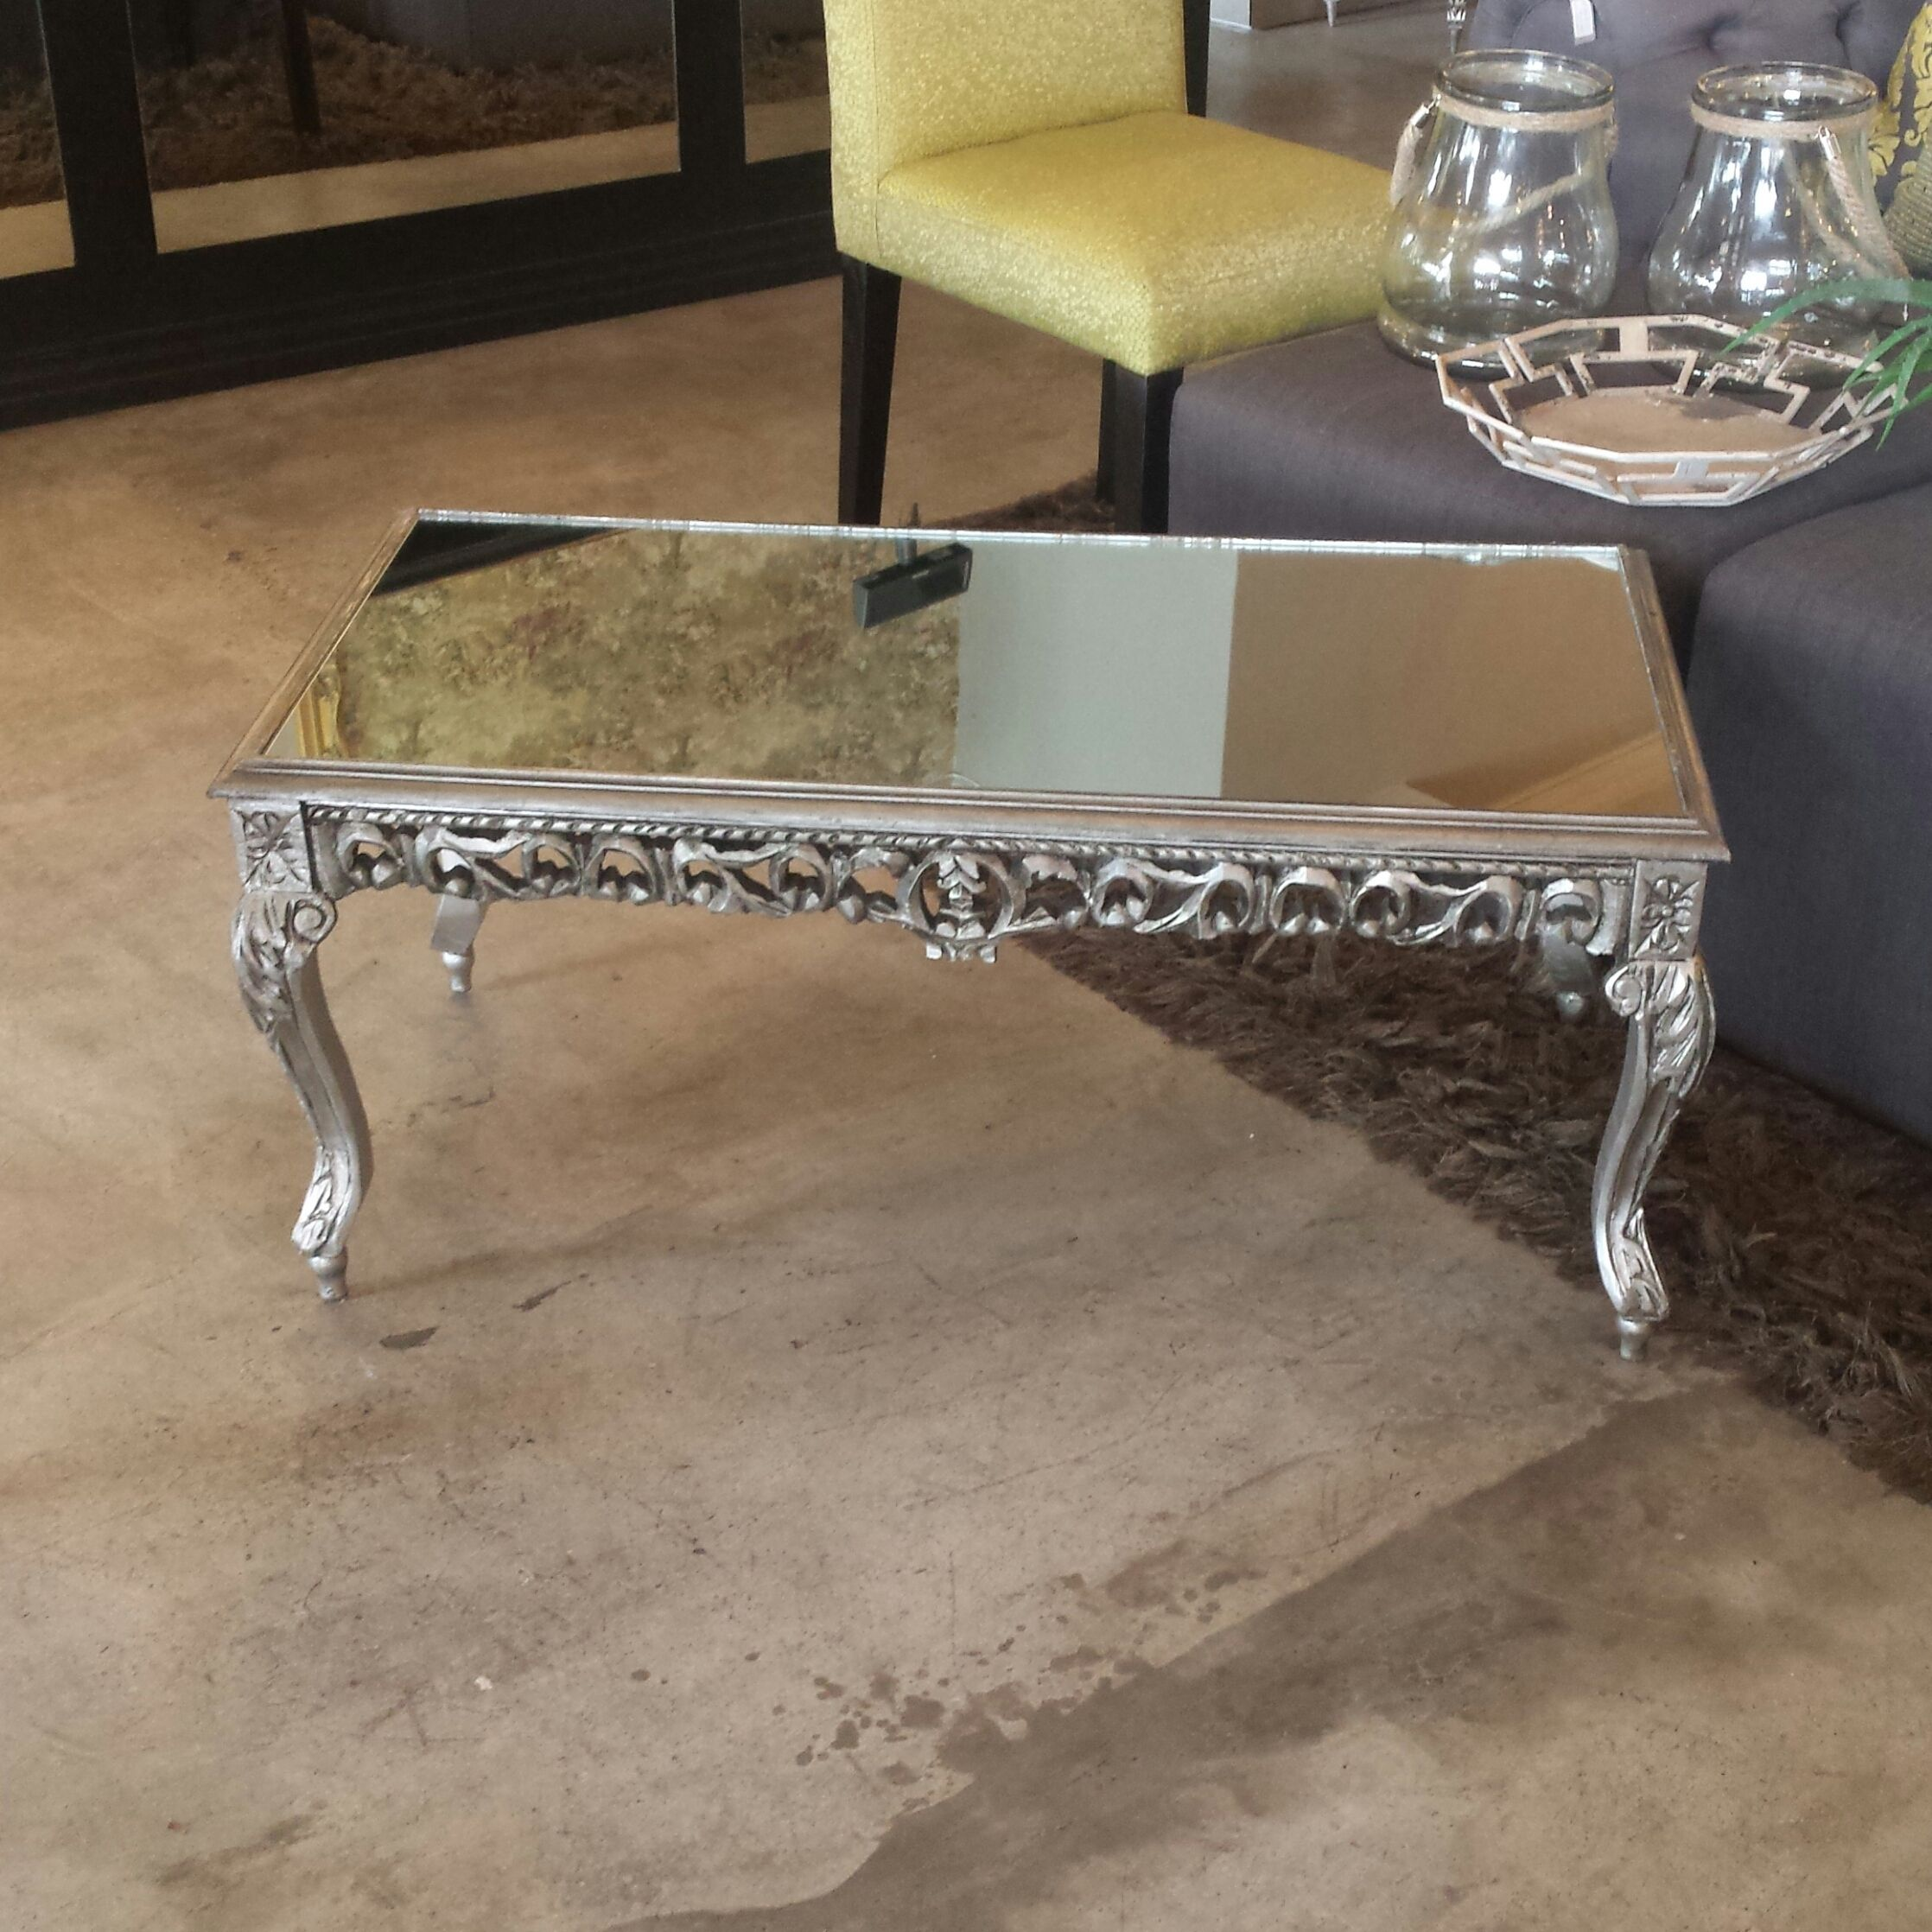 Low Square Mirrored Coffee Table: Silver Mirrored Coffee Table